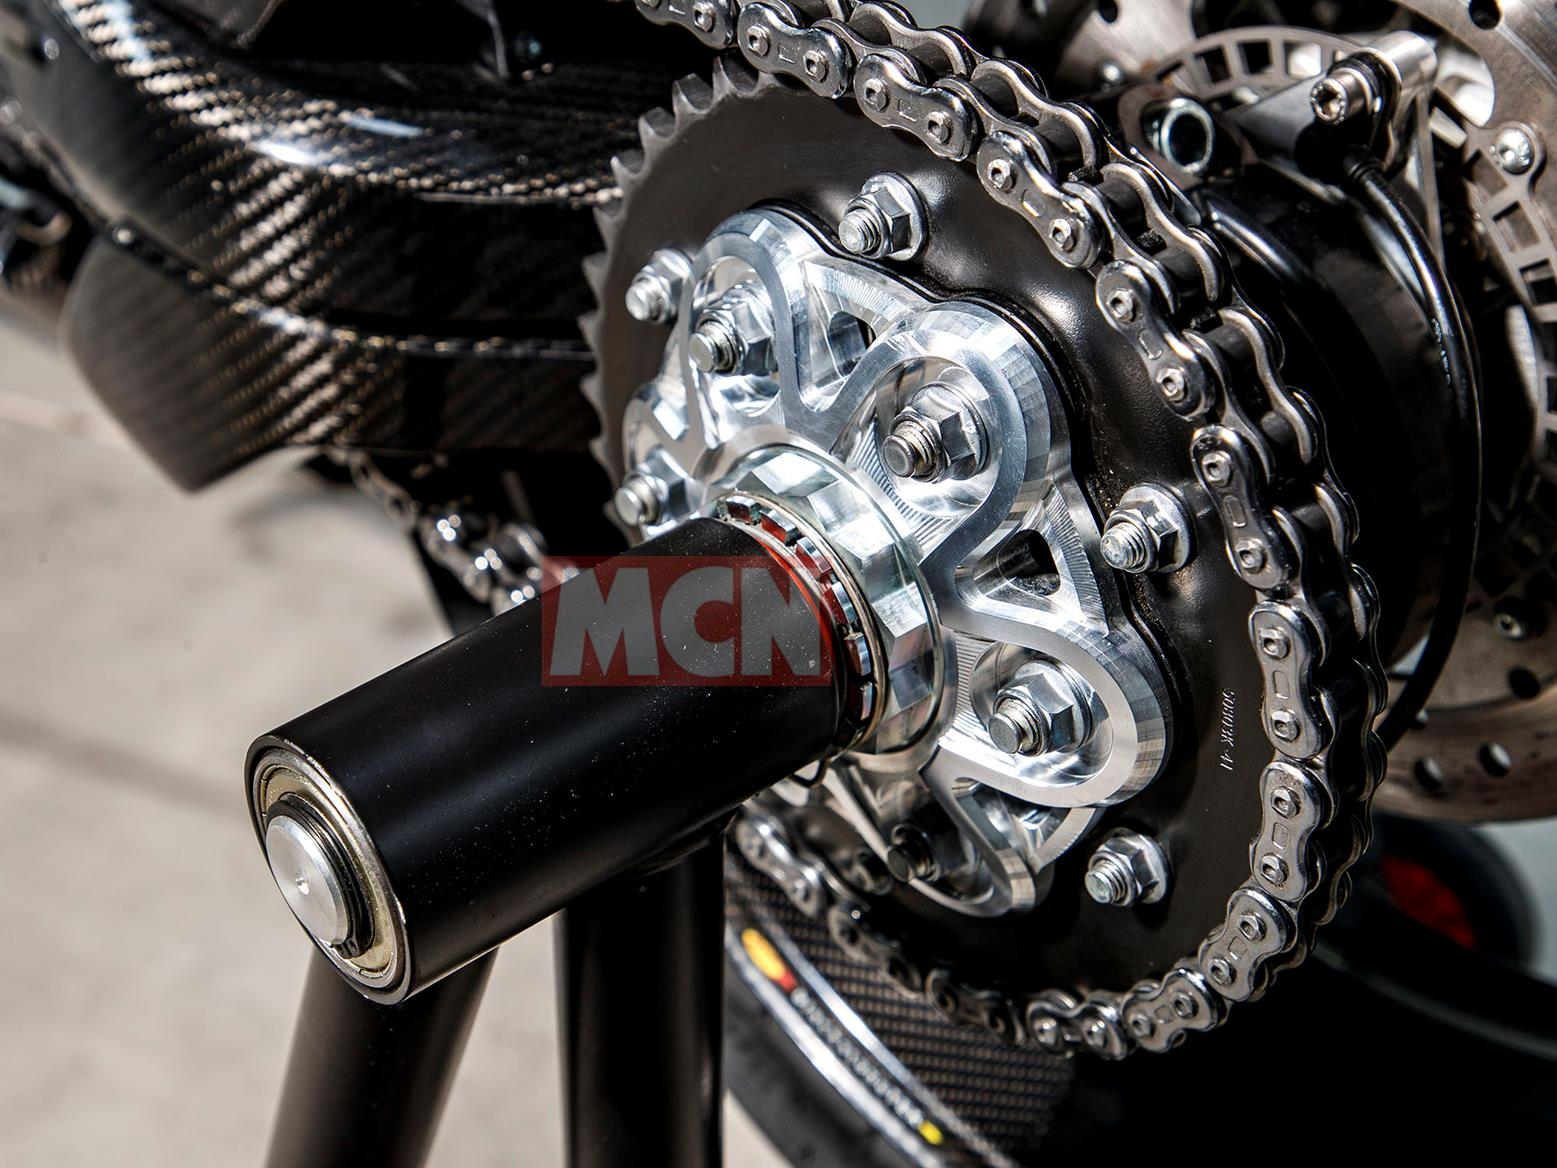 Norton Superlight SS swingarm